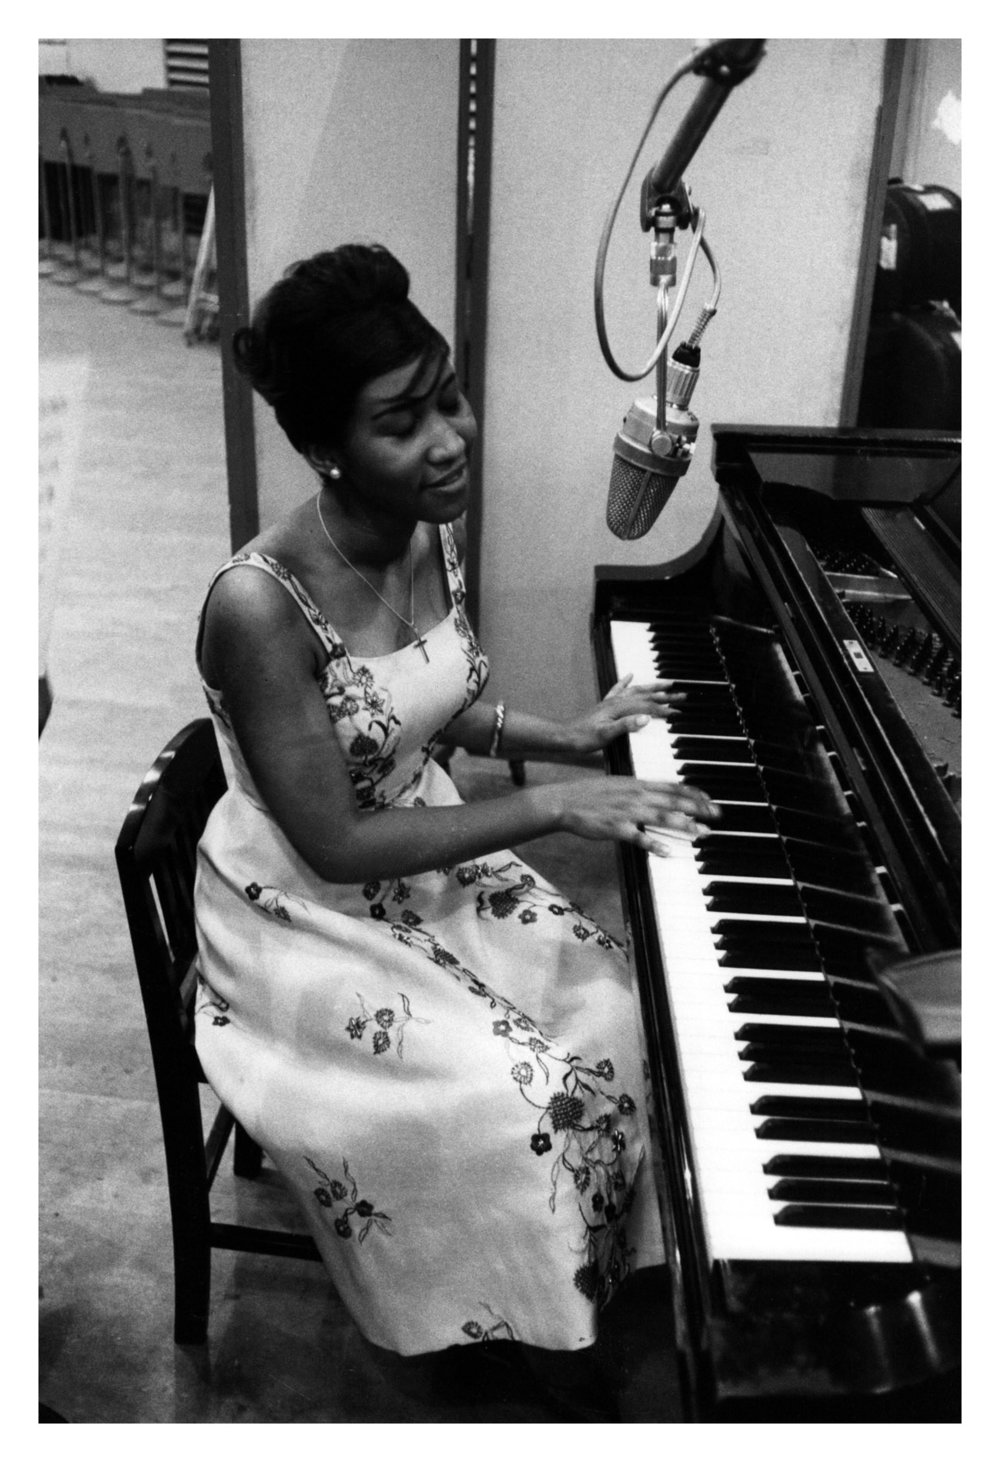 aretha-franklin-take-a-look-image-by-don-hunstein1200a.jpg